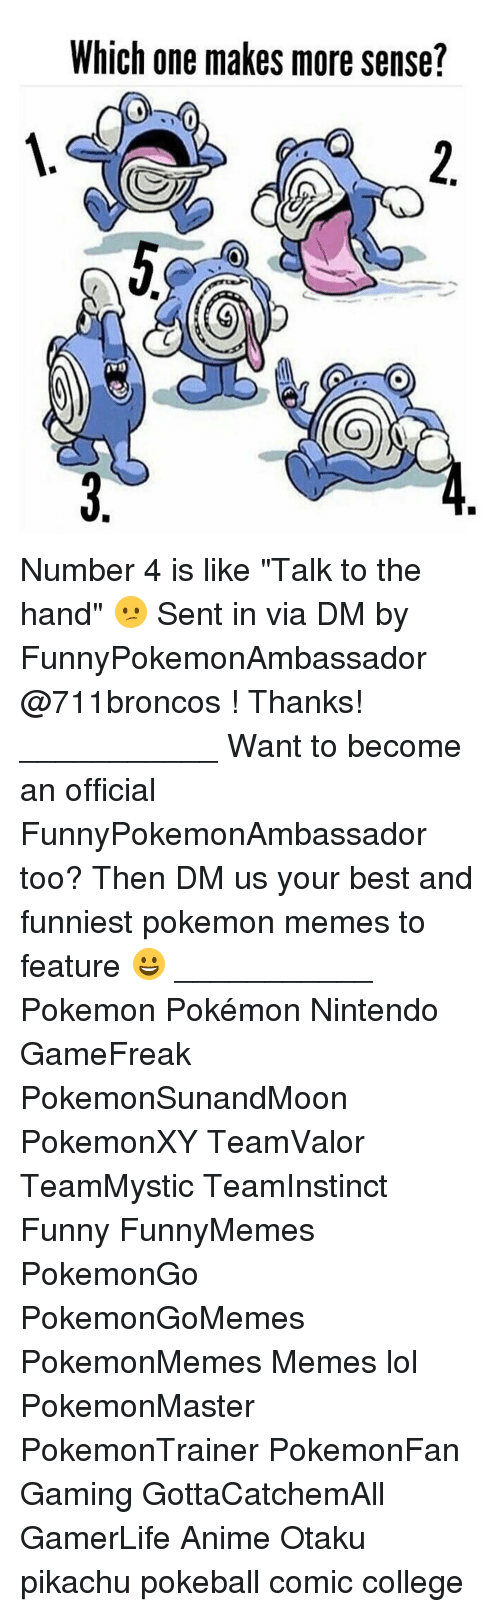 "Memes, Pokemon, and 🤖: Which one makes more sense? Number 4 is like ""Talk to the hand"" 😕 Sent in via DM by FunnyPokemonAmbassador @711broncos ! Thanks! ___________ Want to become an official FunnyPokemonAmbassador too? Then DM us your best and funniest pokemon memes to feature 😀 ___________ Pokemon Pokémon Nintendo GameFreak PokemonSunandMoon PokemonXY TeamValor TeamMystic TeamInstinct Funny FunnyMemes PokemonGo PokemonGoMemes PokemonMemes Memes lol ポケットモンスター PokemonMaster PokemonTrainer PokemonFan Gaming GottaCatchemAll GamerLife Anime Otaku pikachu pokeball comic college"